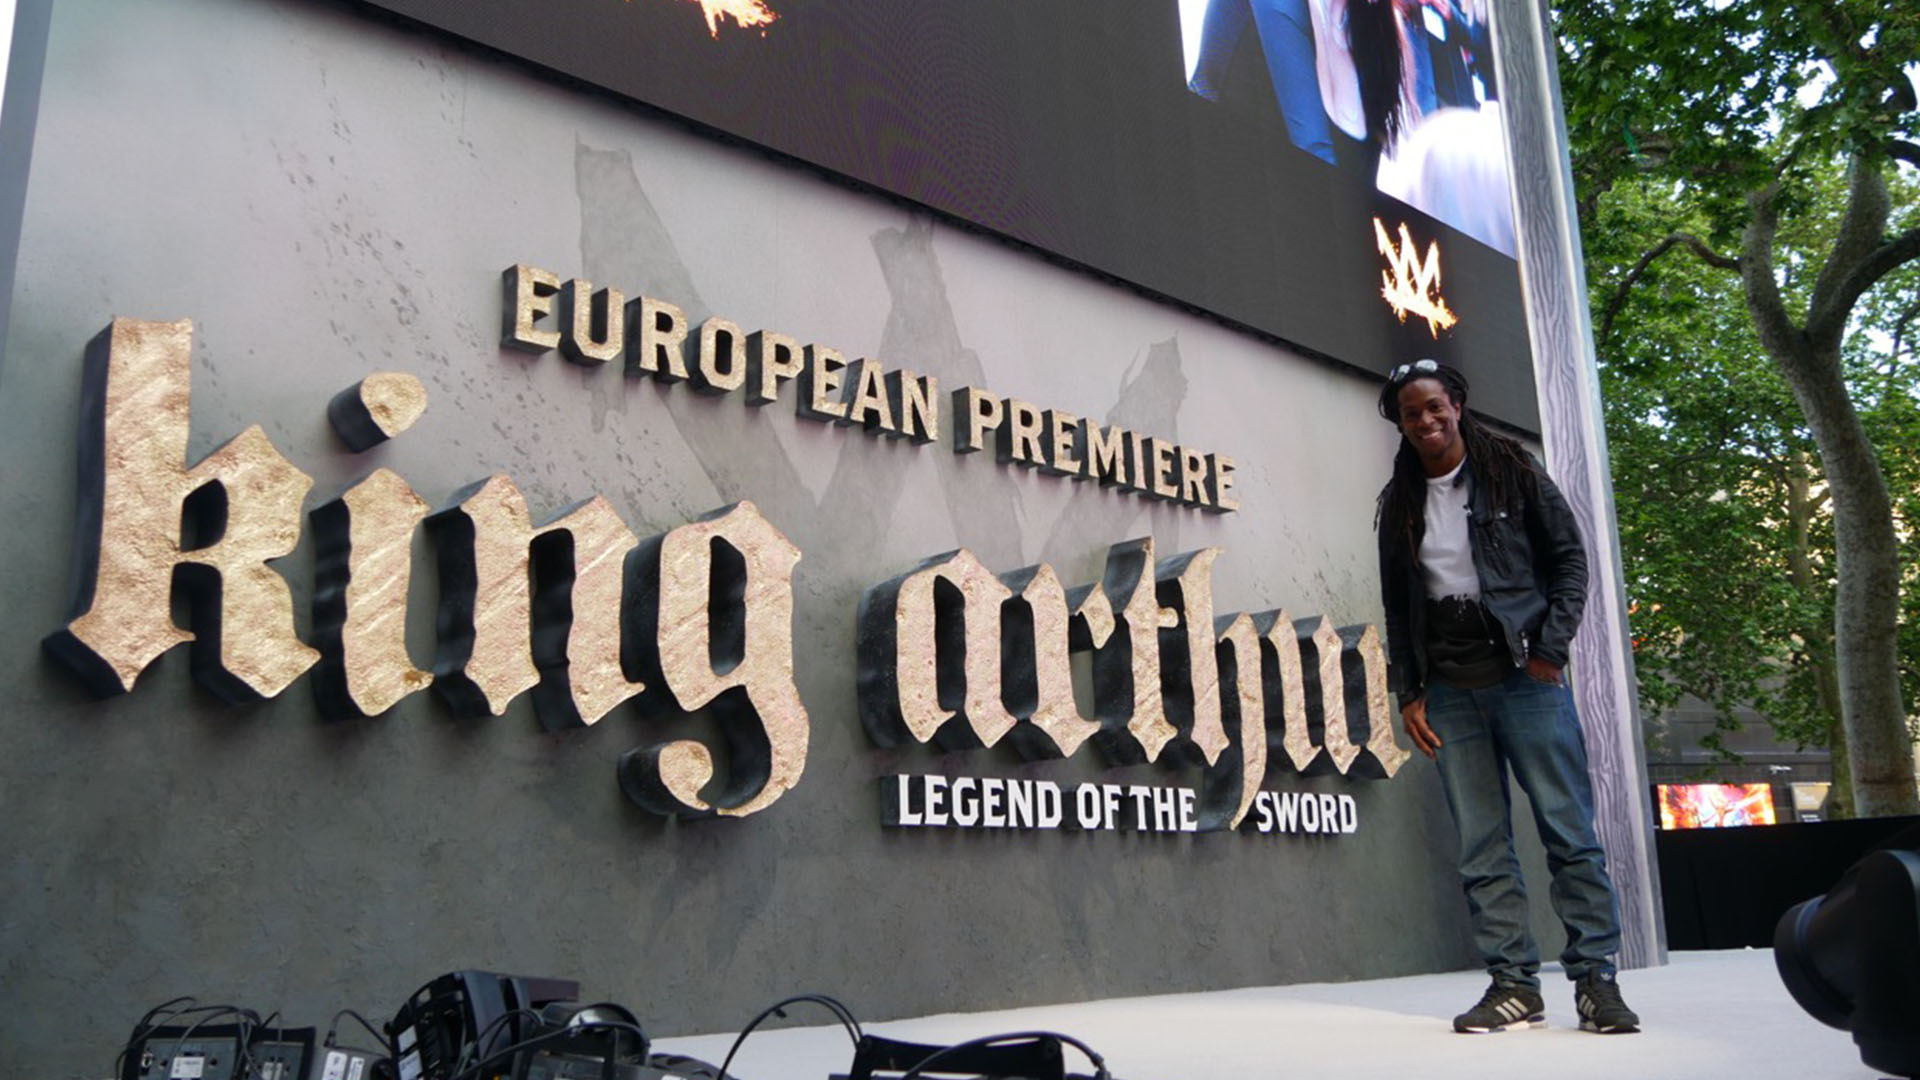 British TV Presenter Nigel Clarke at the King Arthur European Premiere